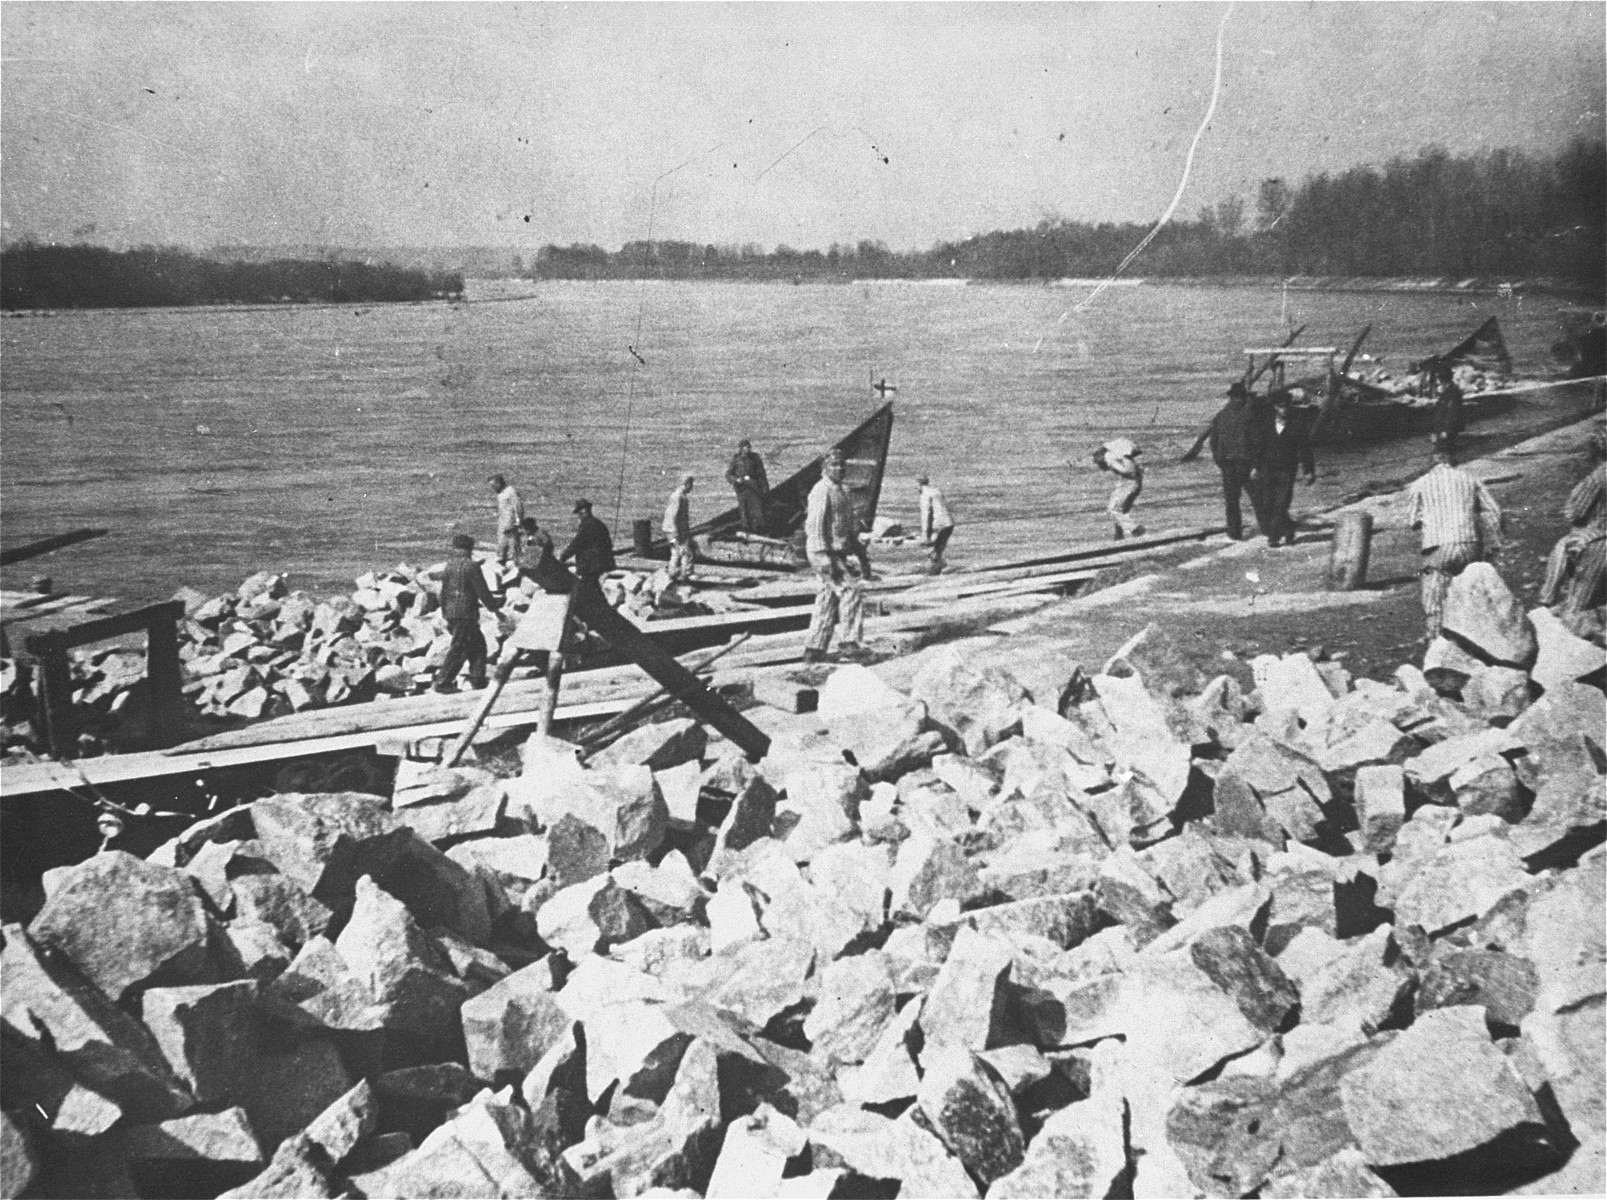 Prisoners at forced labor in the Mauthausen concentration camp loading rocks onto boats in the Danube River.